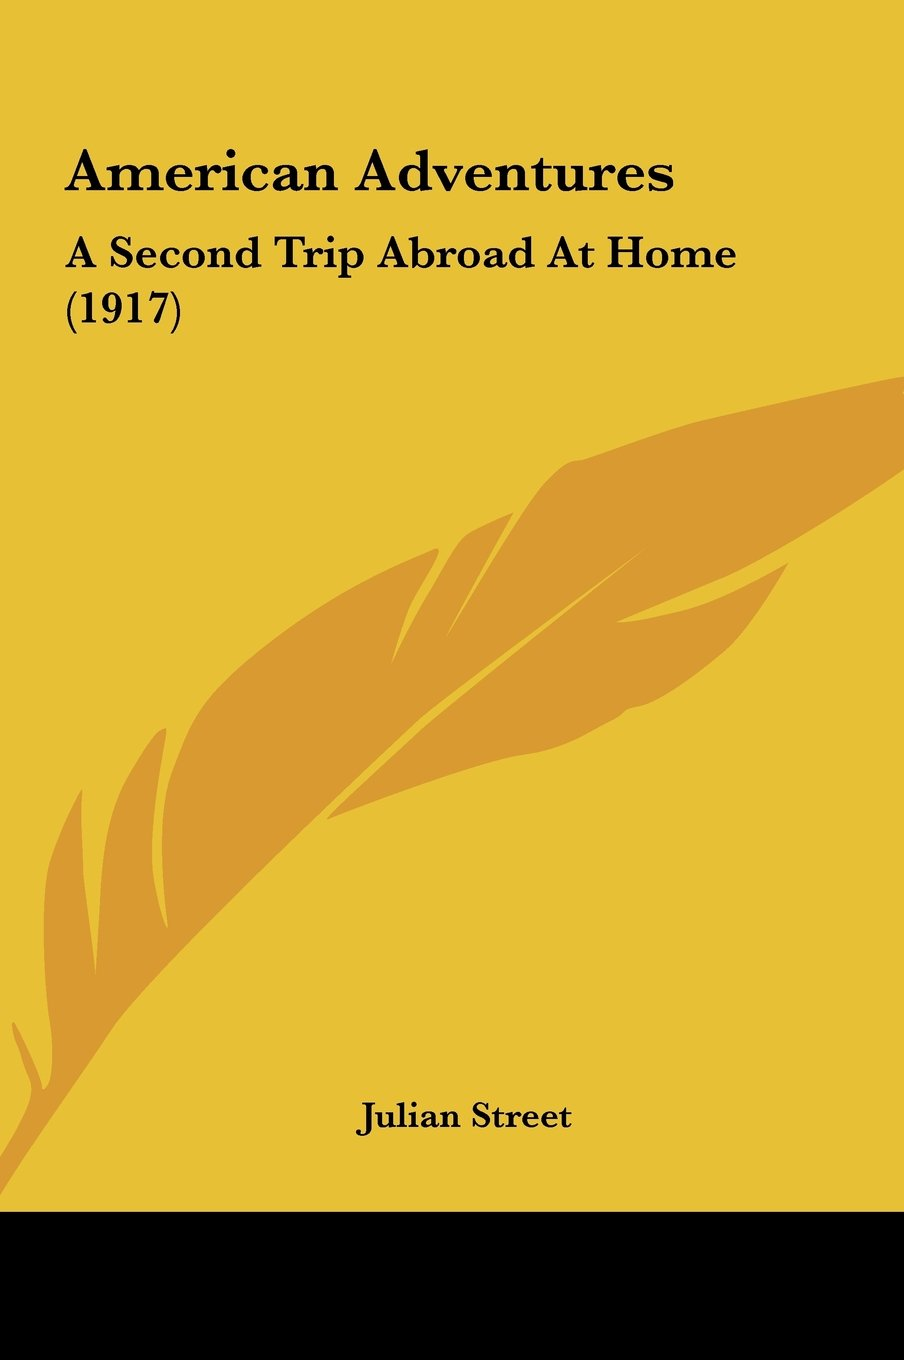 Download American Adventures: A Second Trip Abroad at Home (1917) PDF